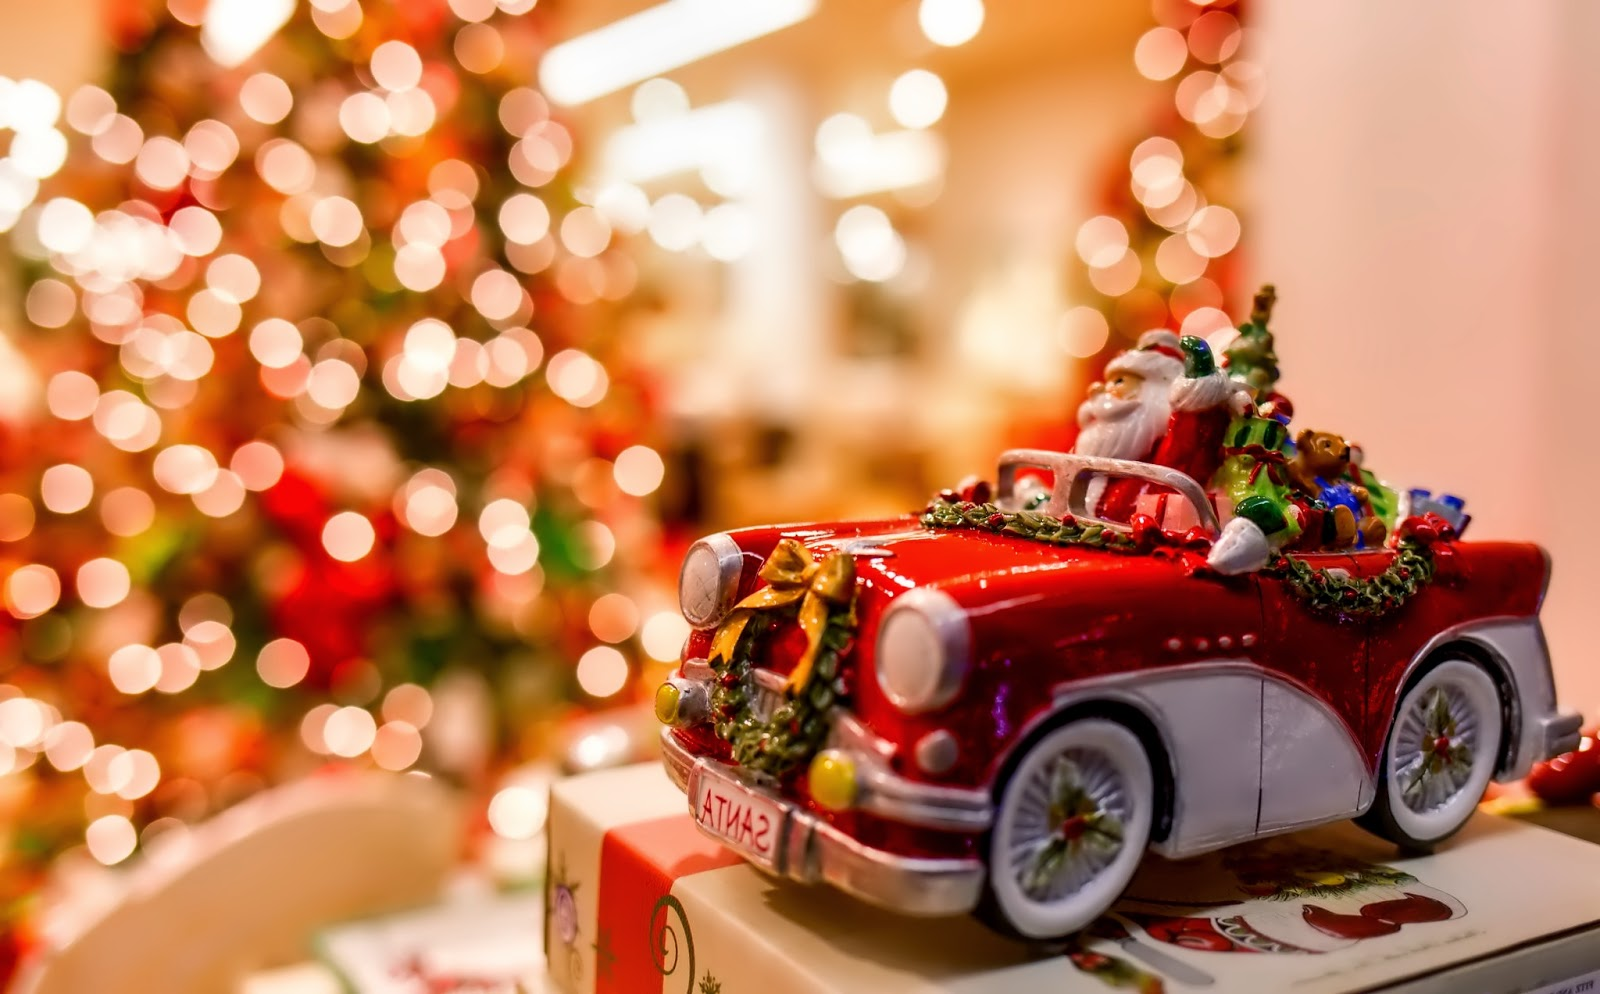 Santa-claus-toy-in-car-with-gift-bag-Christmas-dolls-image.jpg